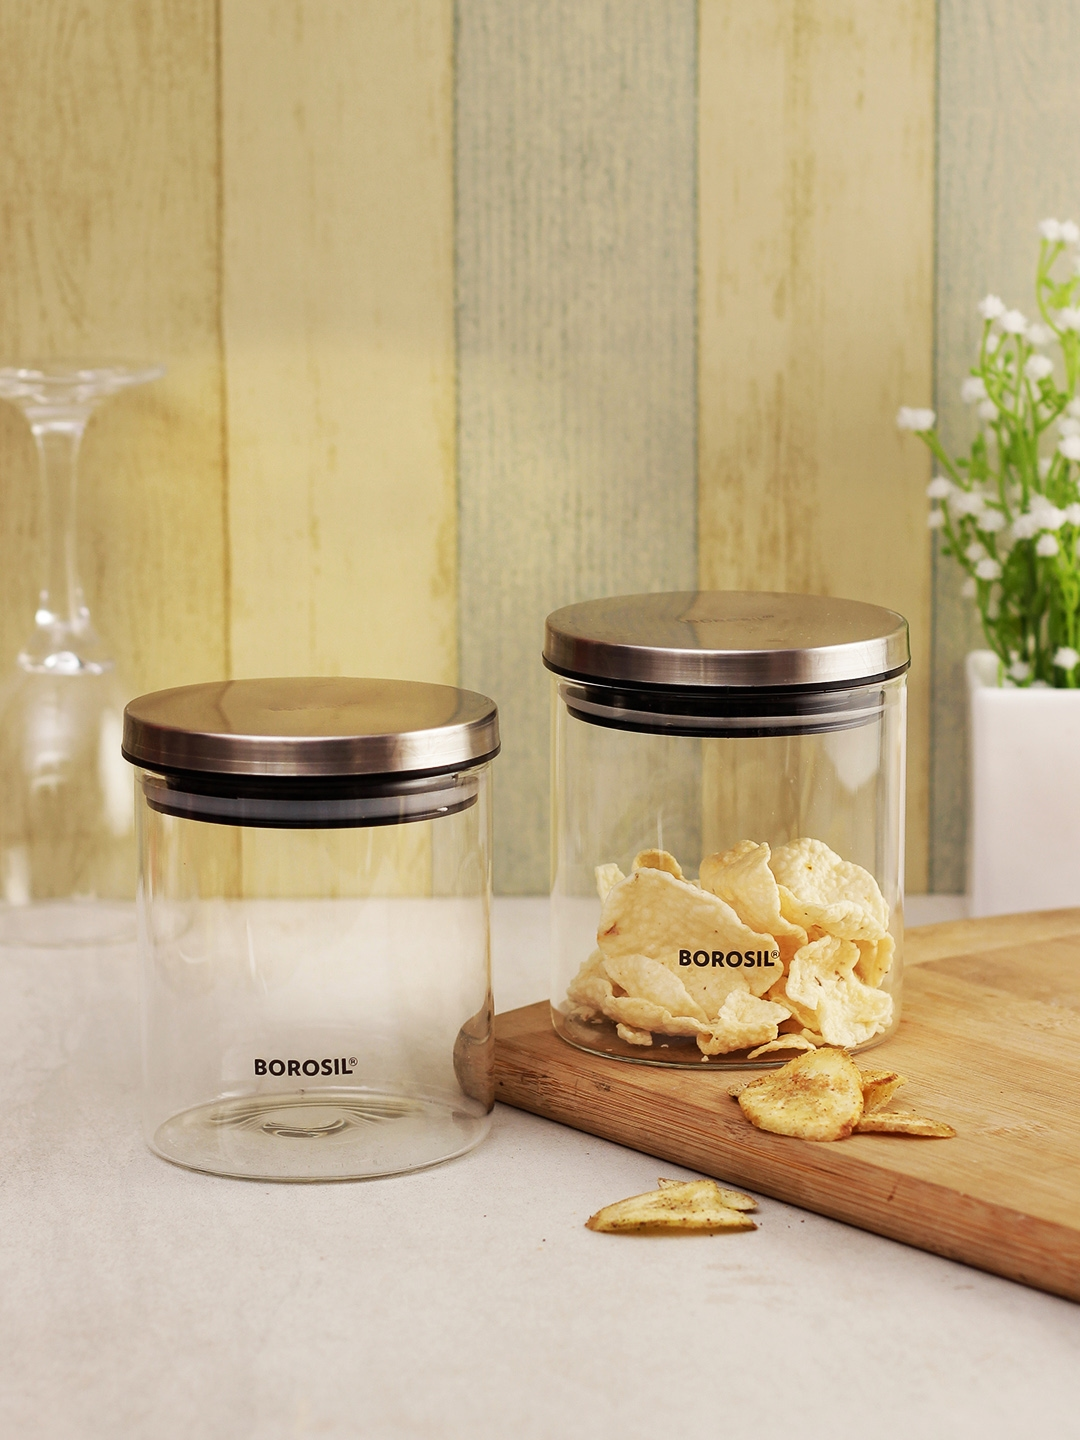 BOROSIL Set Of 2 Transparent   Silver Toned Borosilicate Glass Storage Containers With Lids